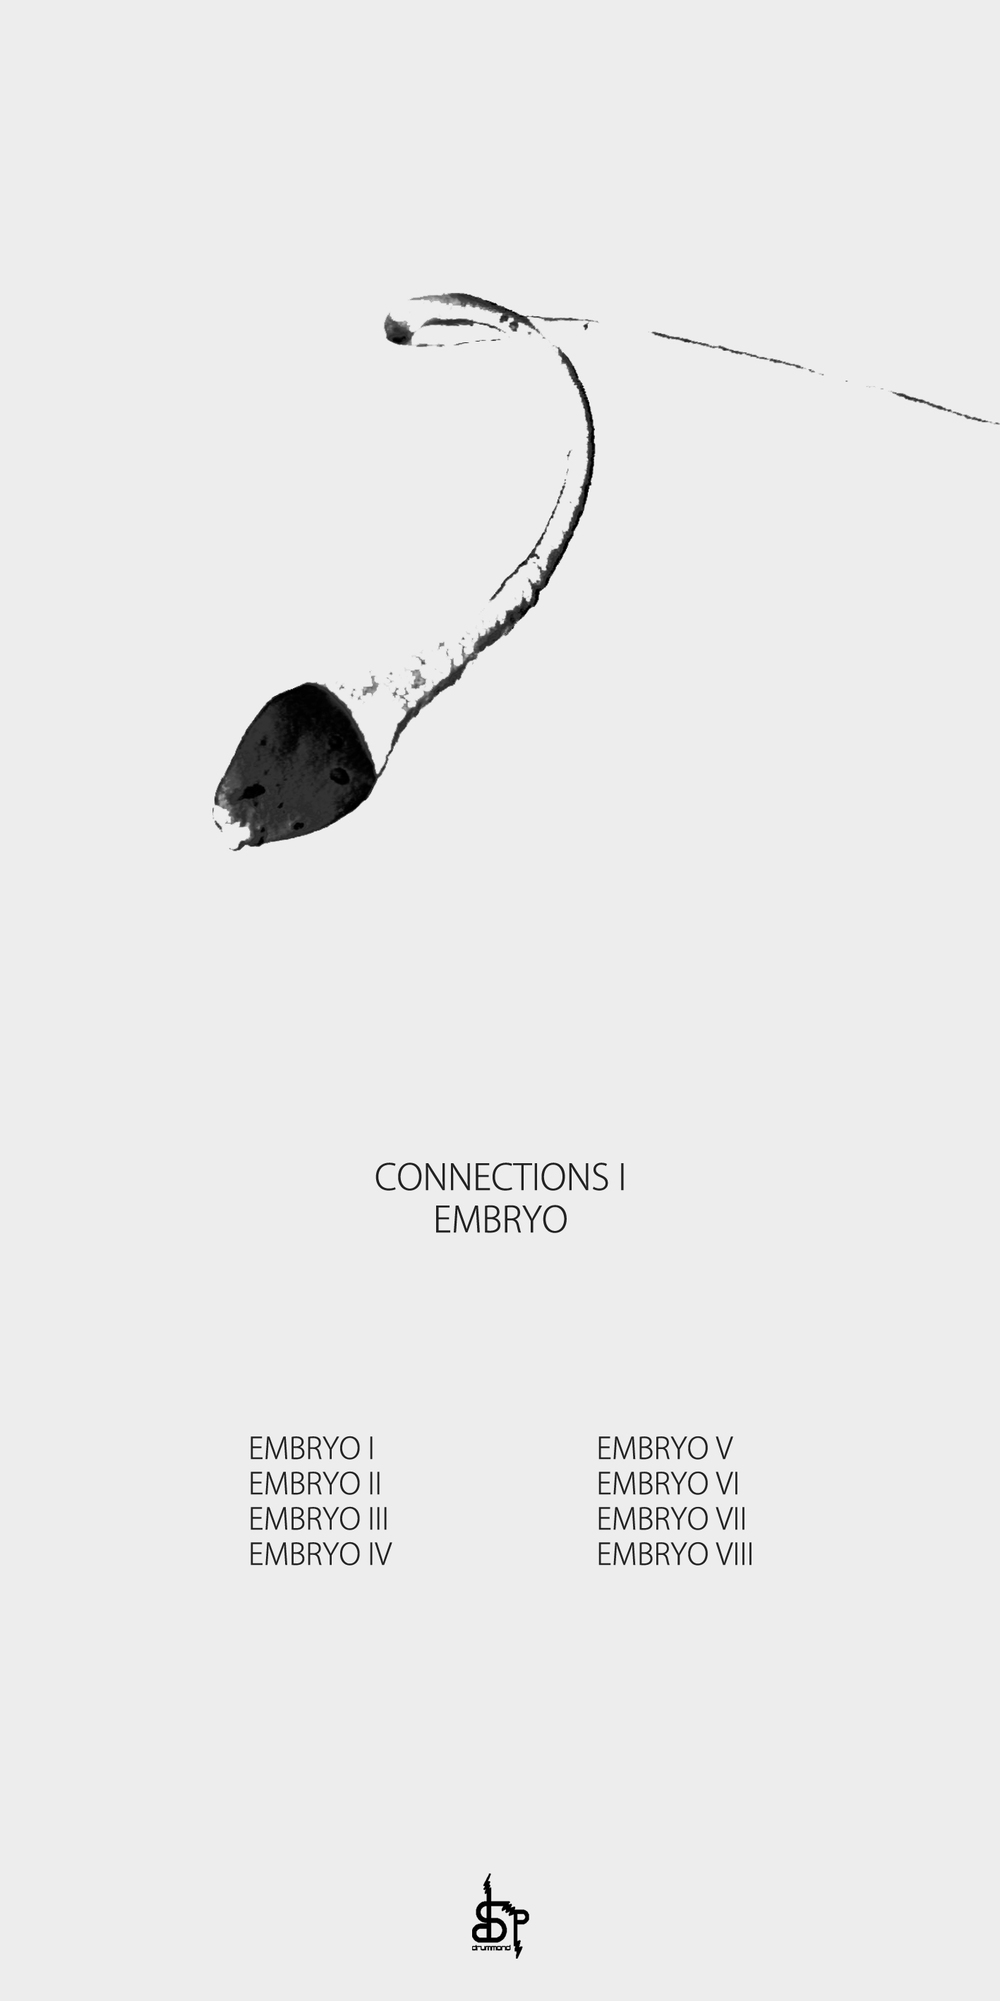 DSP013 - Biagio Laponte - Connections I - Embryo